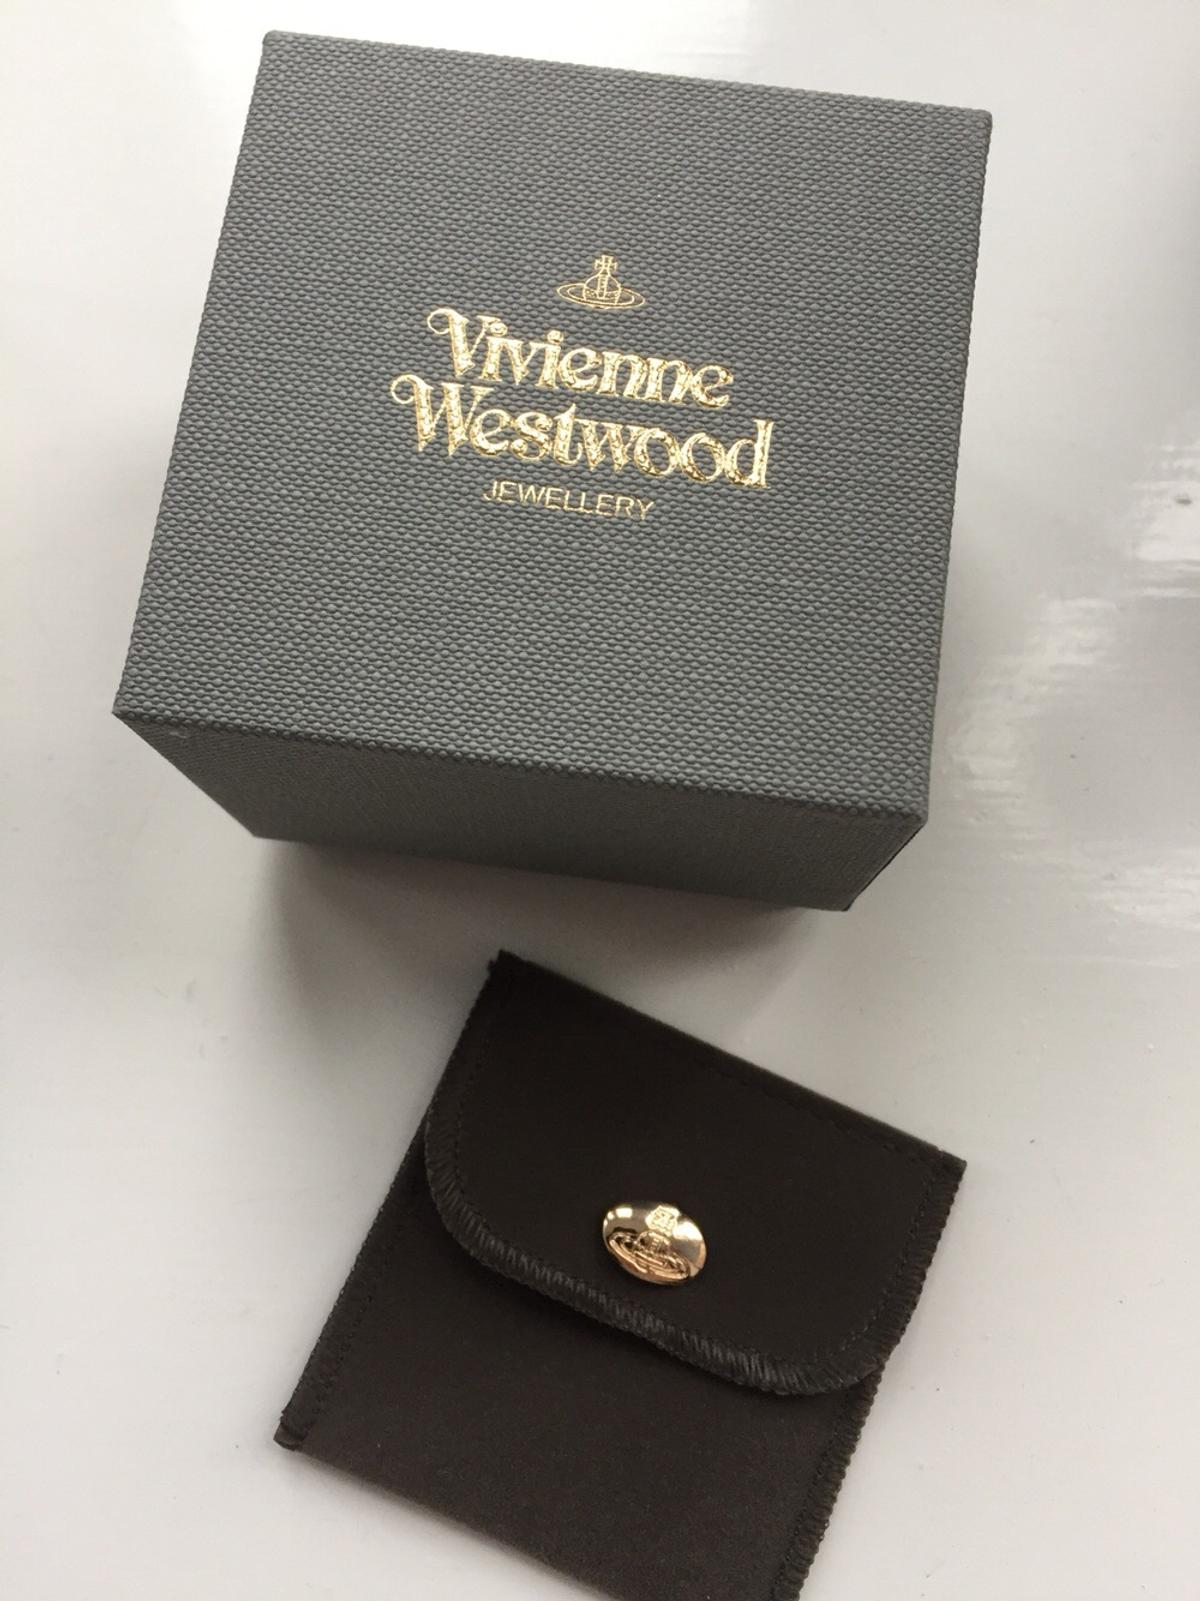 7ef501460 2 empty Vivienne Westwood jewellery boxes. in CW8 Cuddington for ...